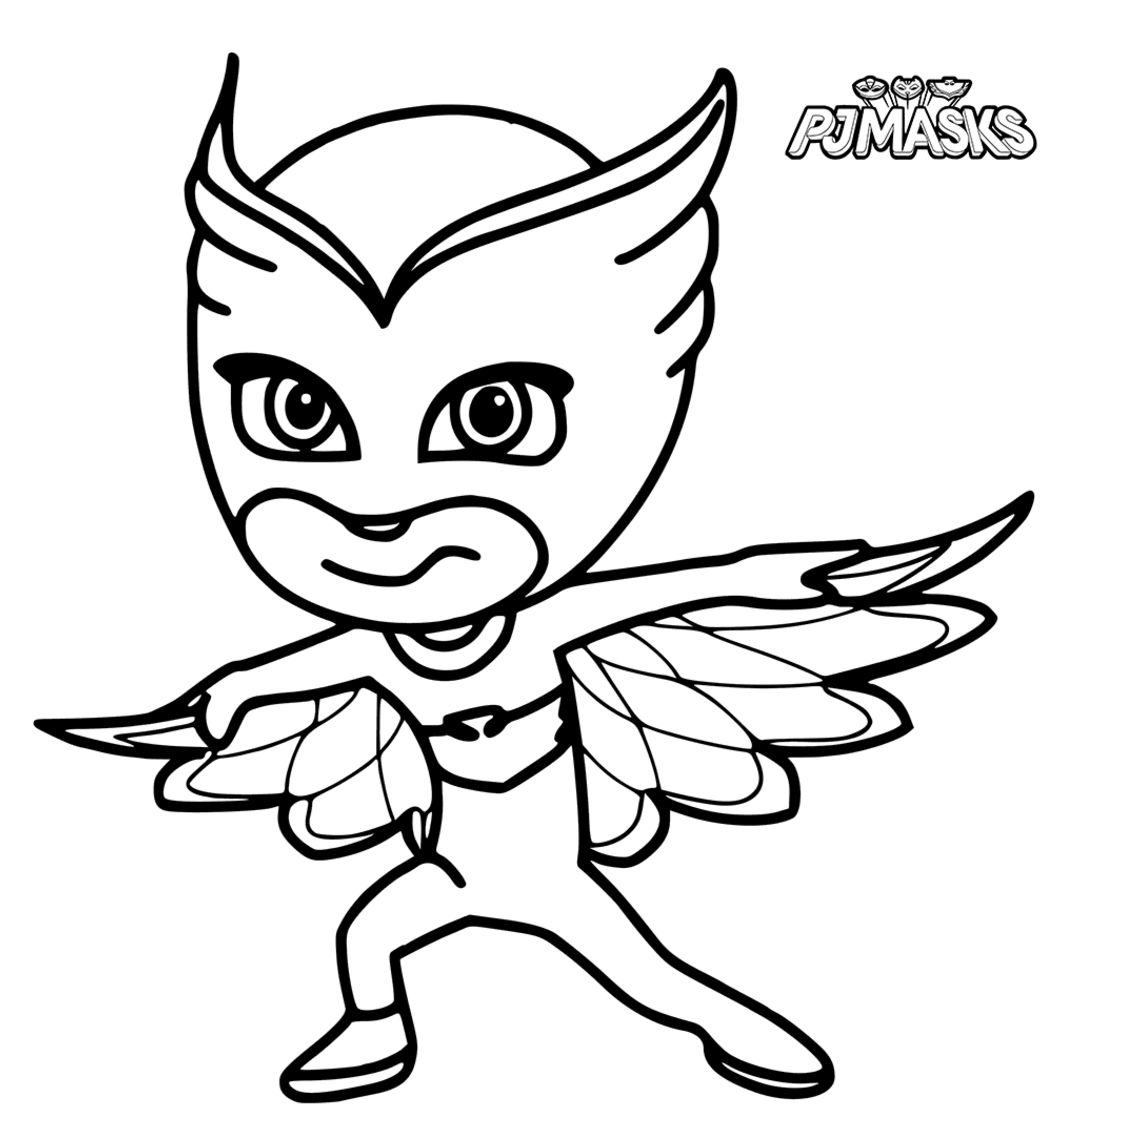 pj masks coloring pages - Colour In Sheet